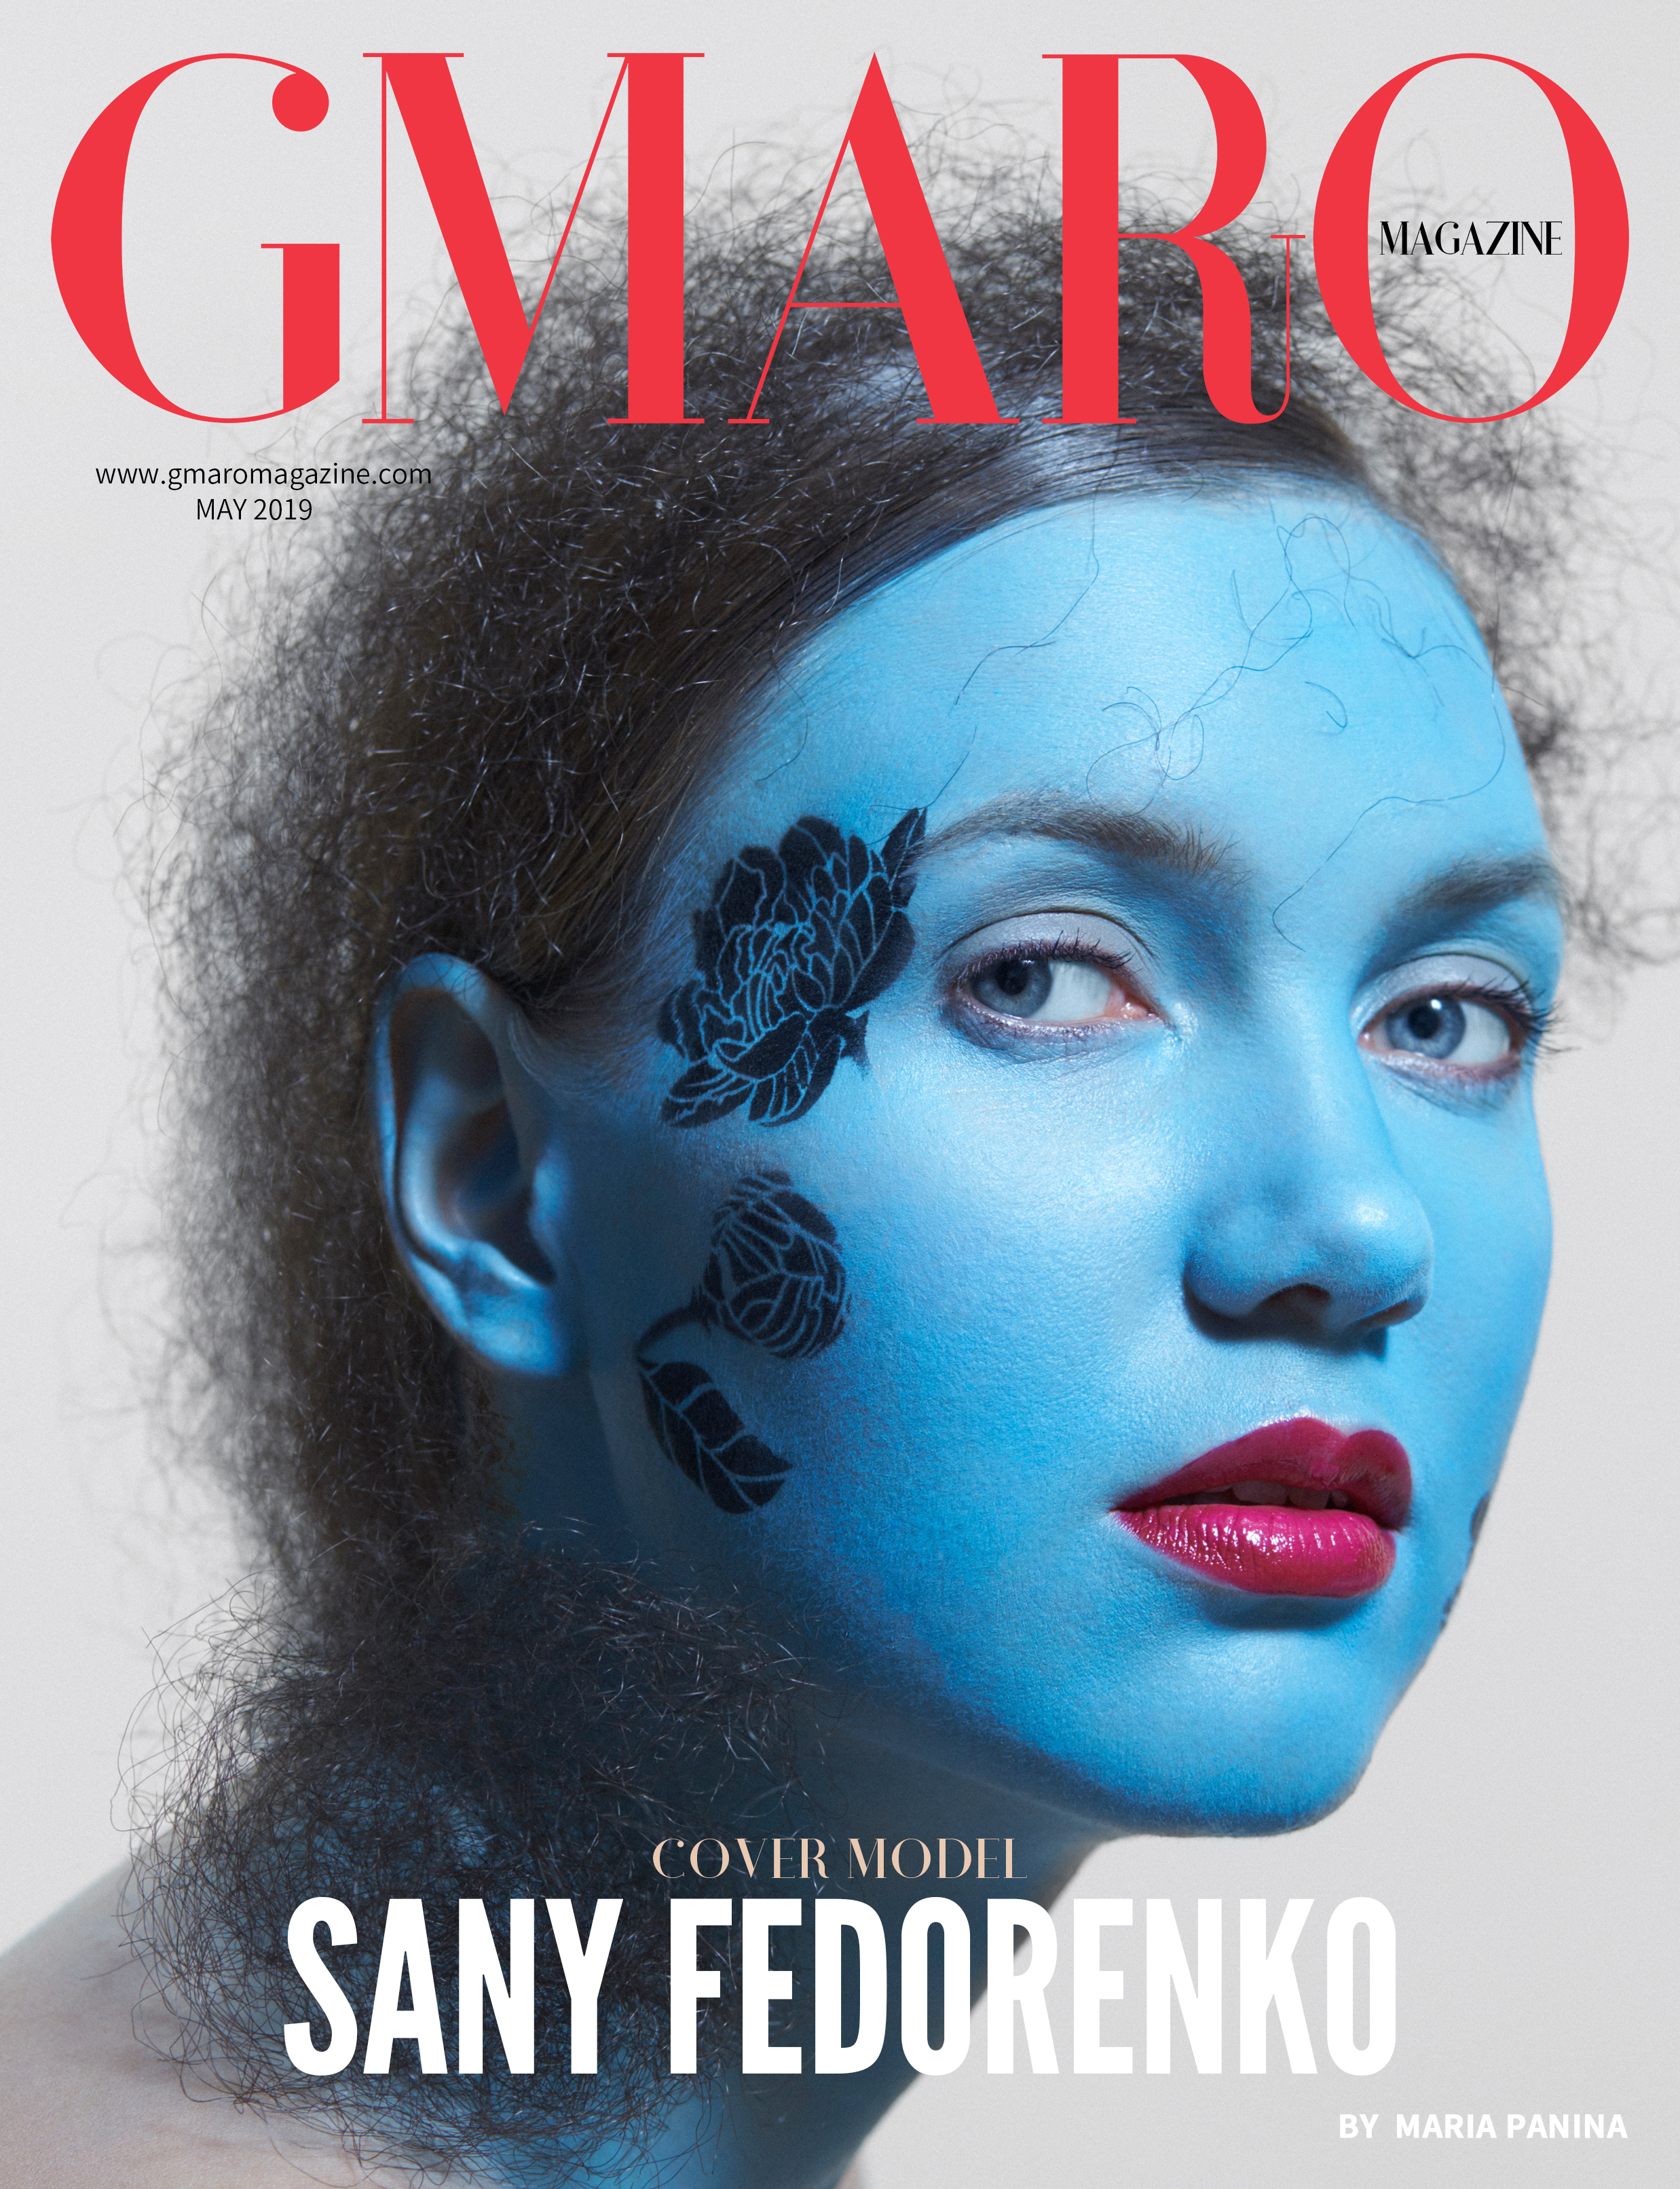 GMARO Magazine #17 MAY 2019